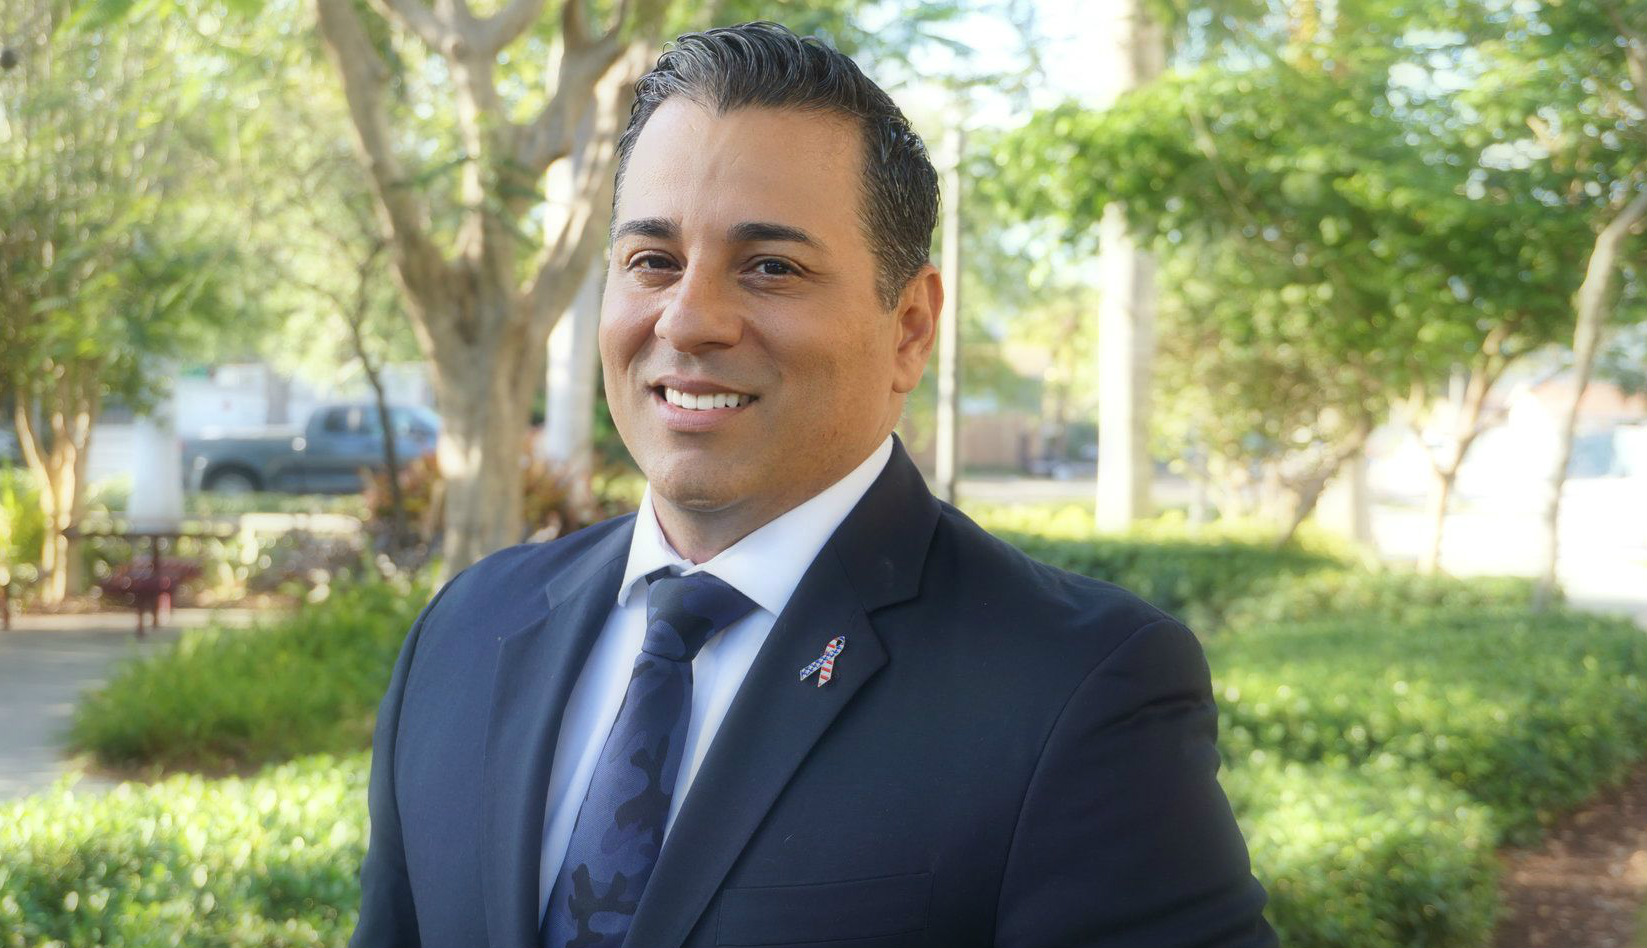 It's official. Manjarres announces congressional run against Democrat Ted Deutch